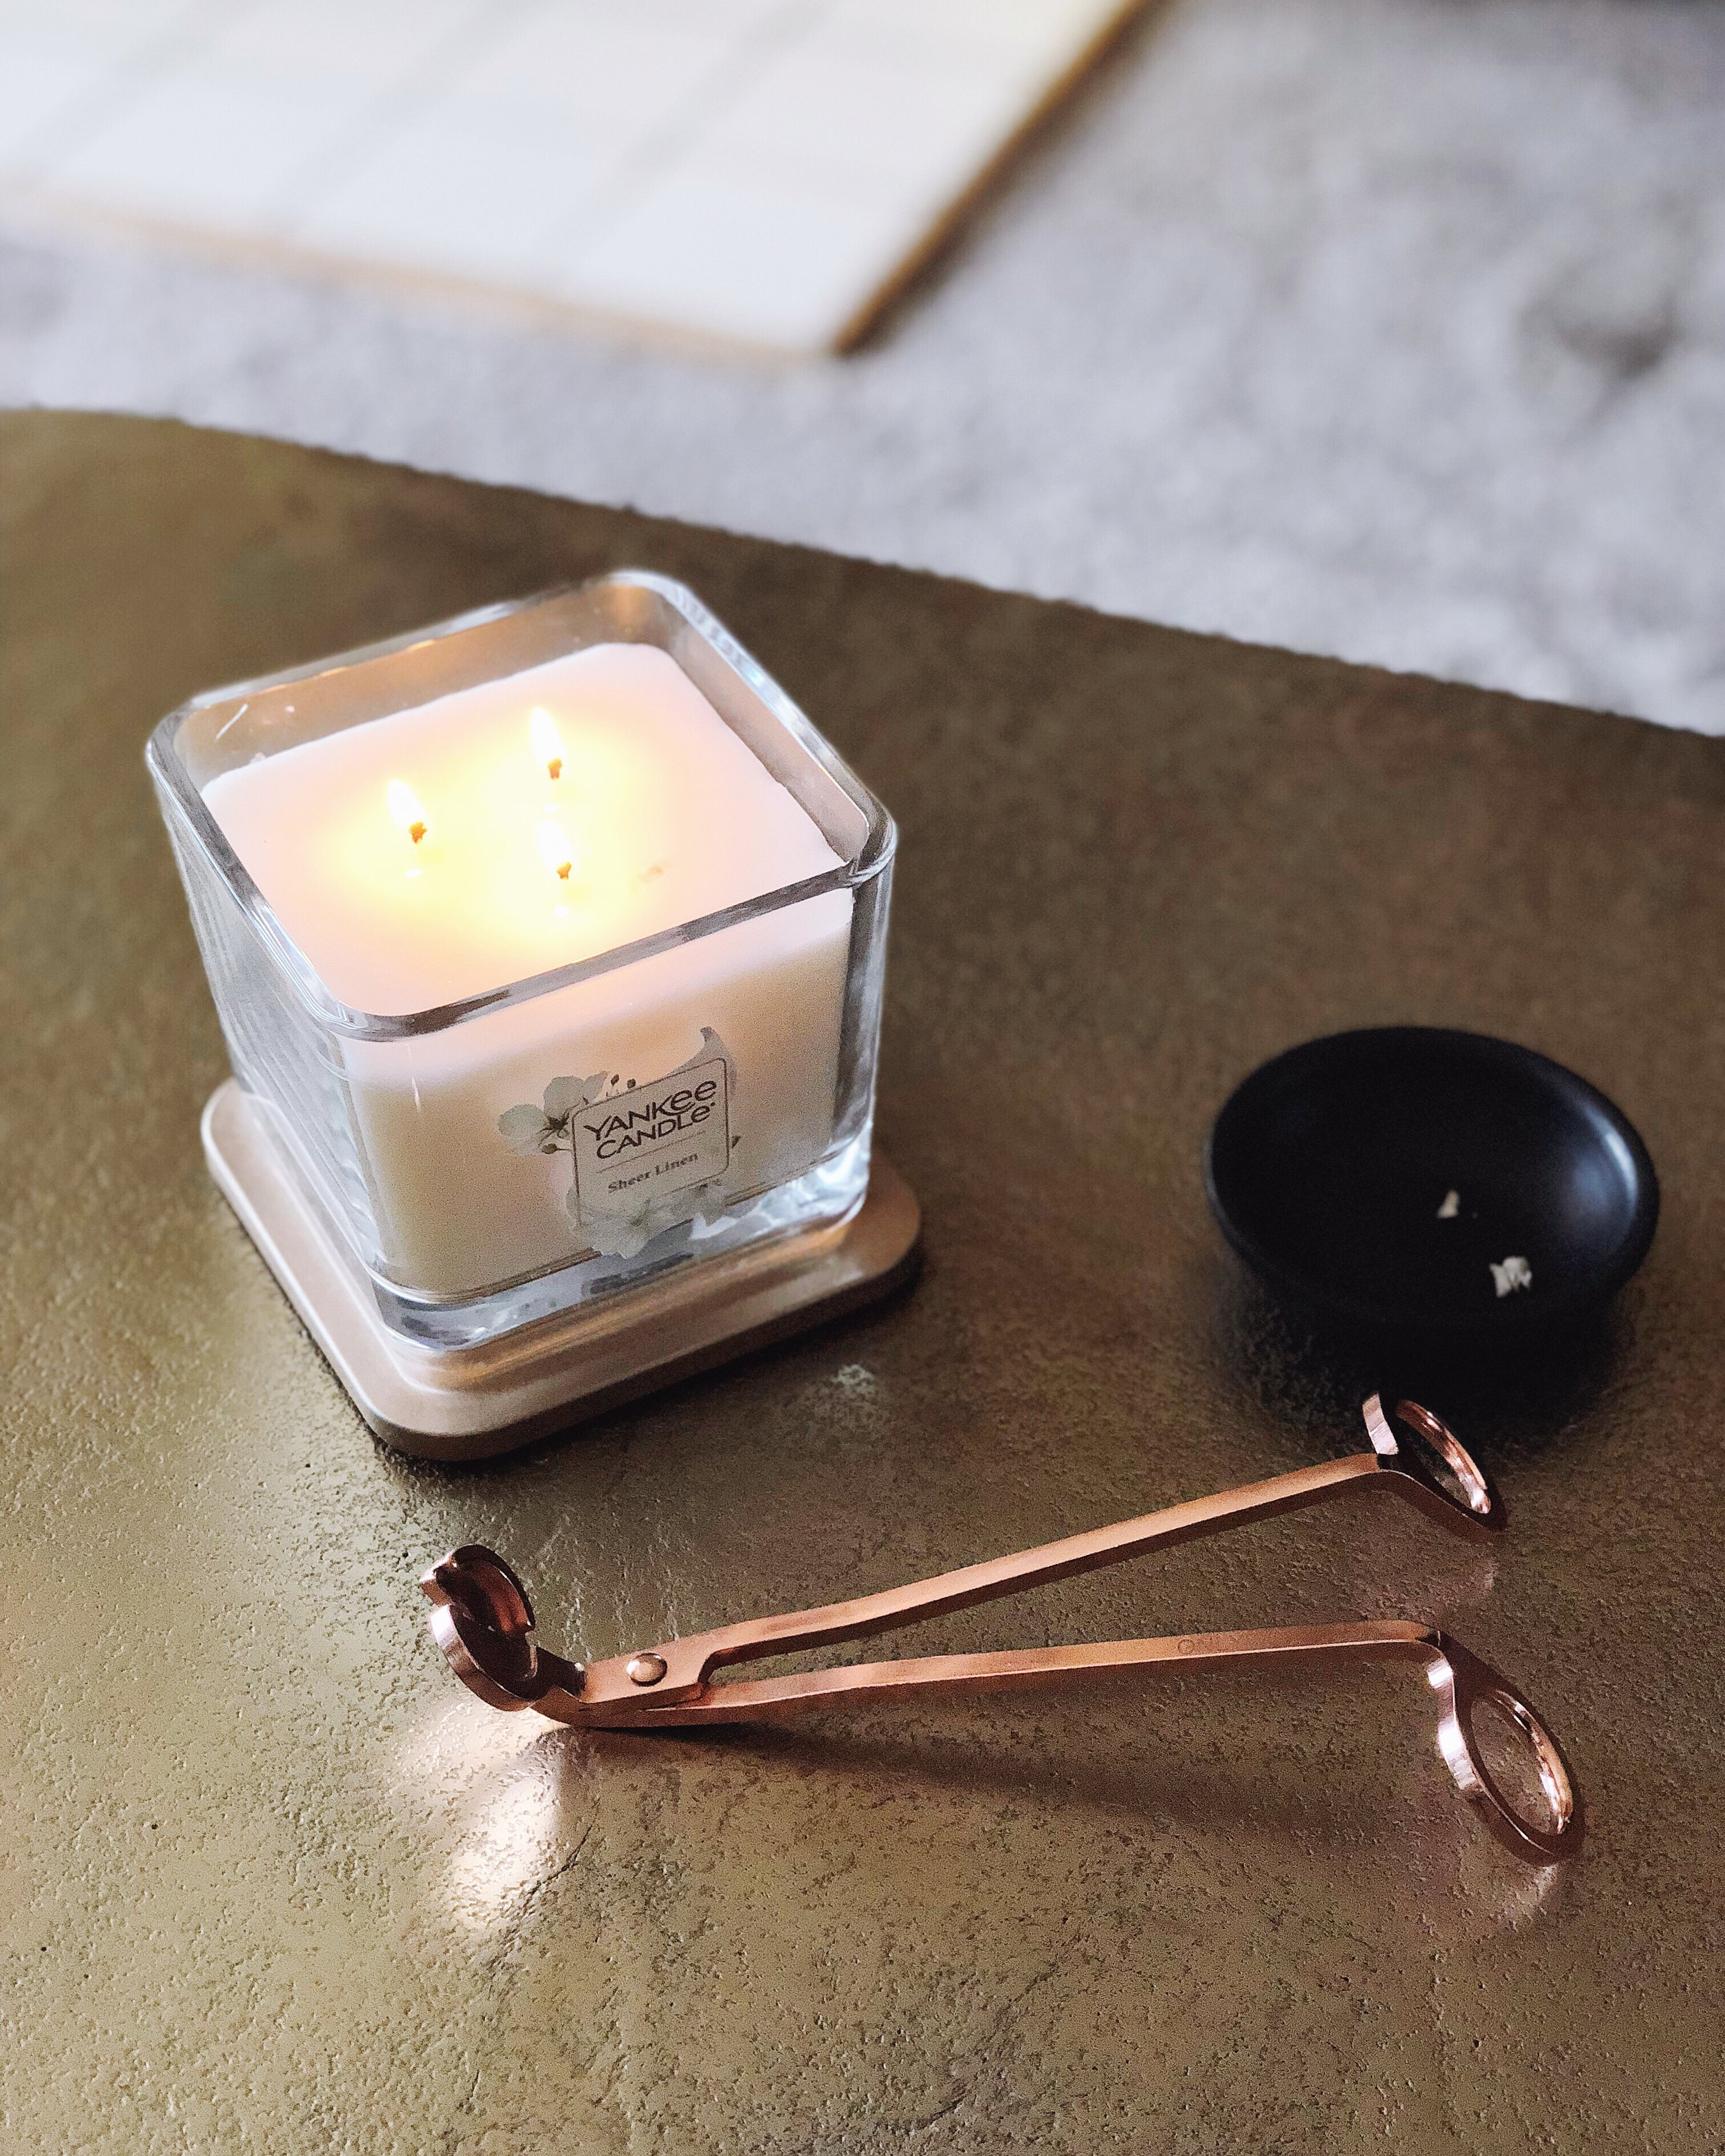 Rose Gold Wick Trimmer  ($11) — if you didn't already know that a wick trimmer can save your life, allow me to educate you! Keeping the wicks of your candles trimmed low helps prevent sparking and excess smoke, reducing the risk of your candles causing an unplanned fire while you burn them. This rose gold option is cheap, but gets the job done!